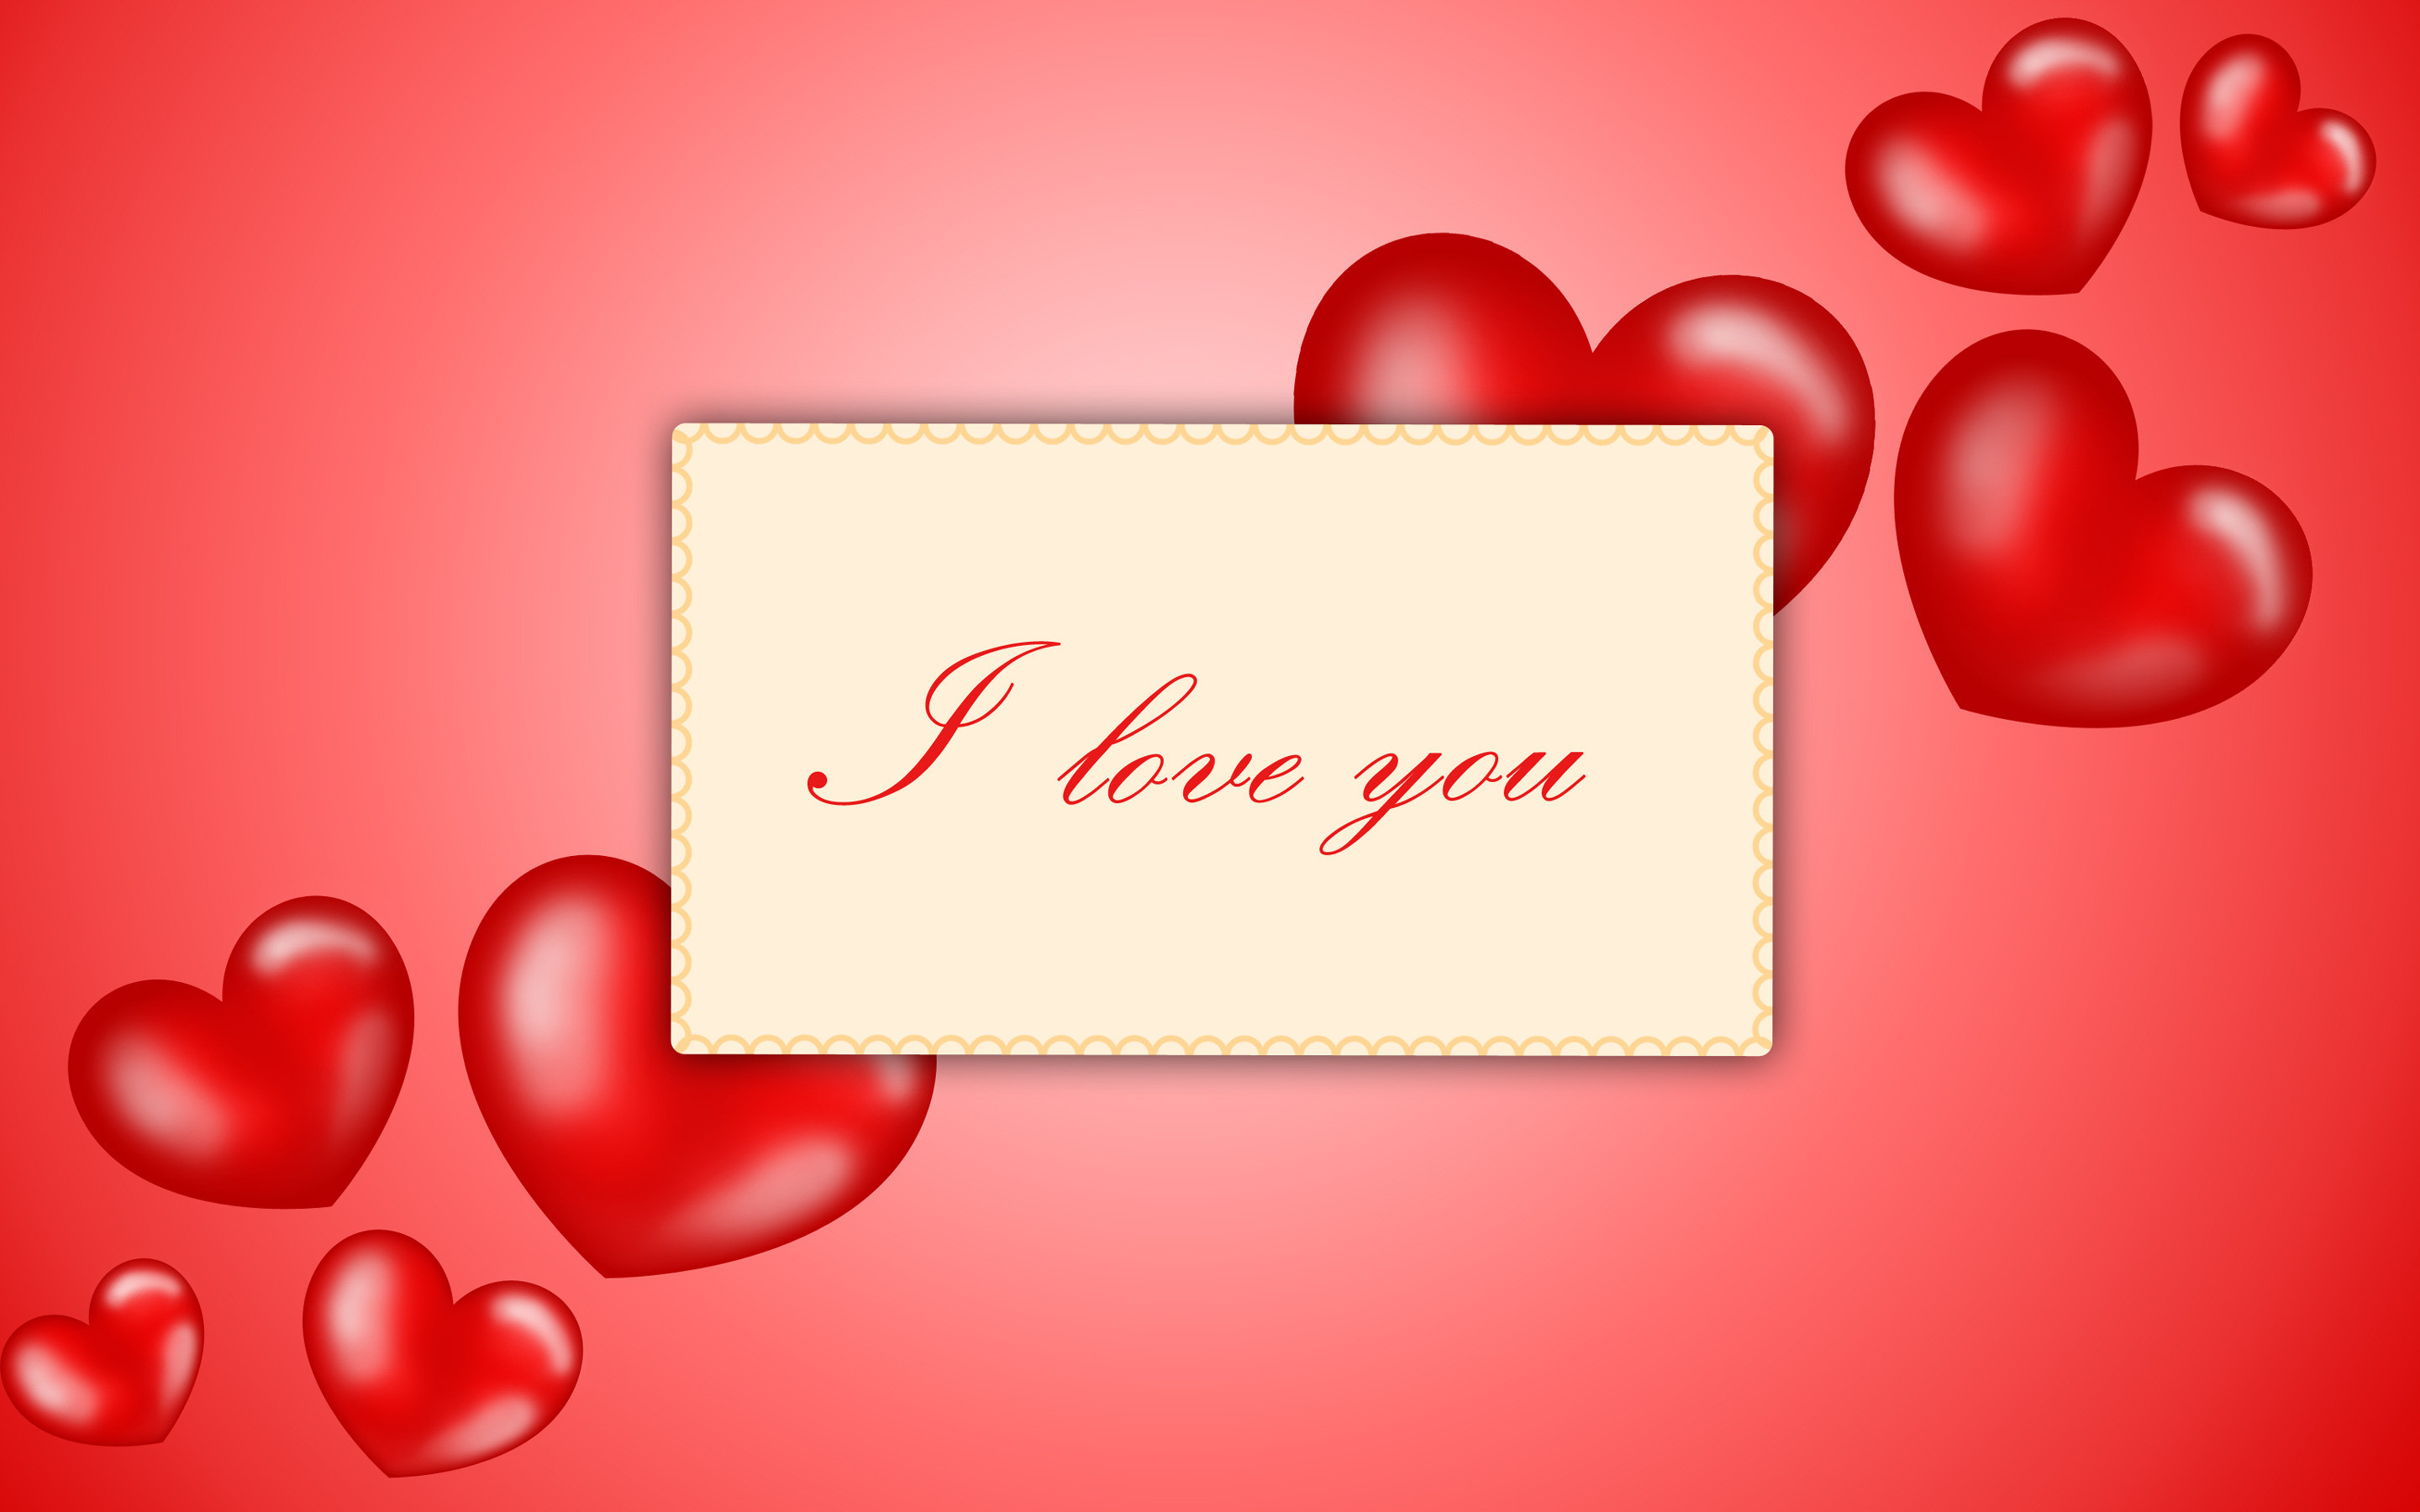 Love You Sister Hd Wallpaper : I Love You Wallpapers with Quotes (56+ images)